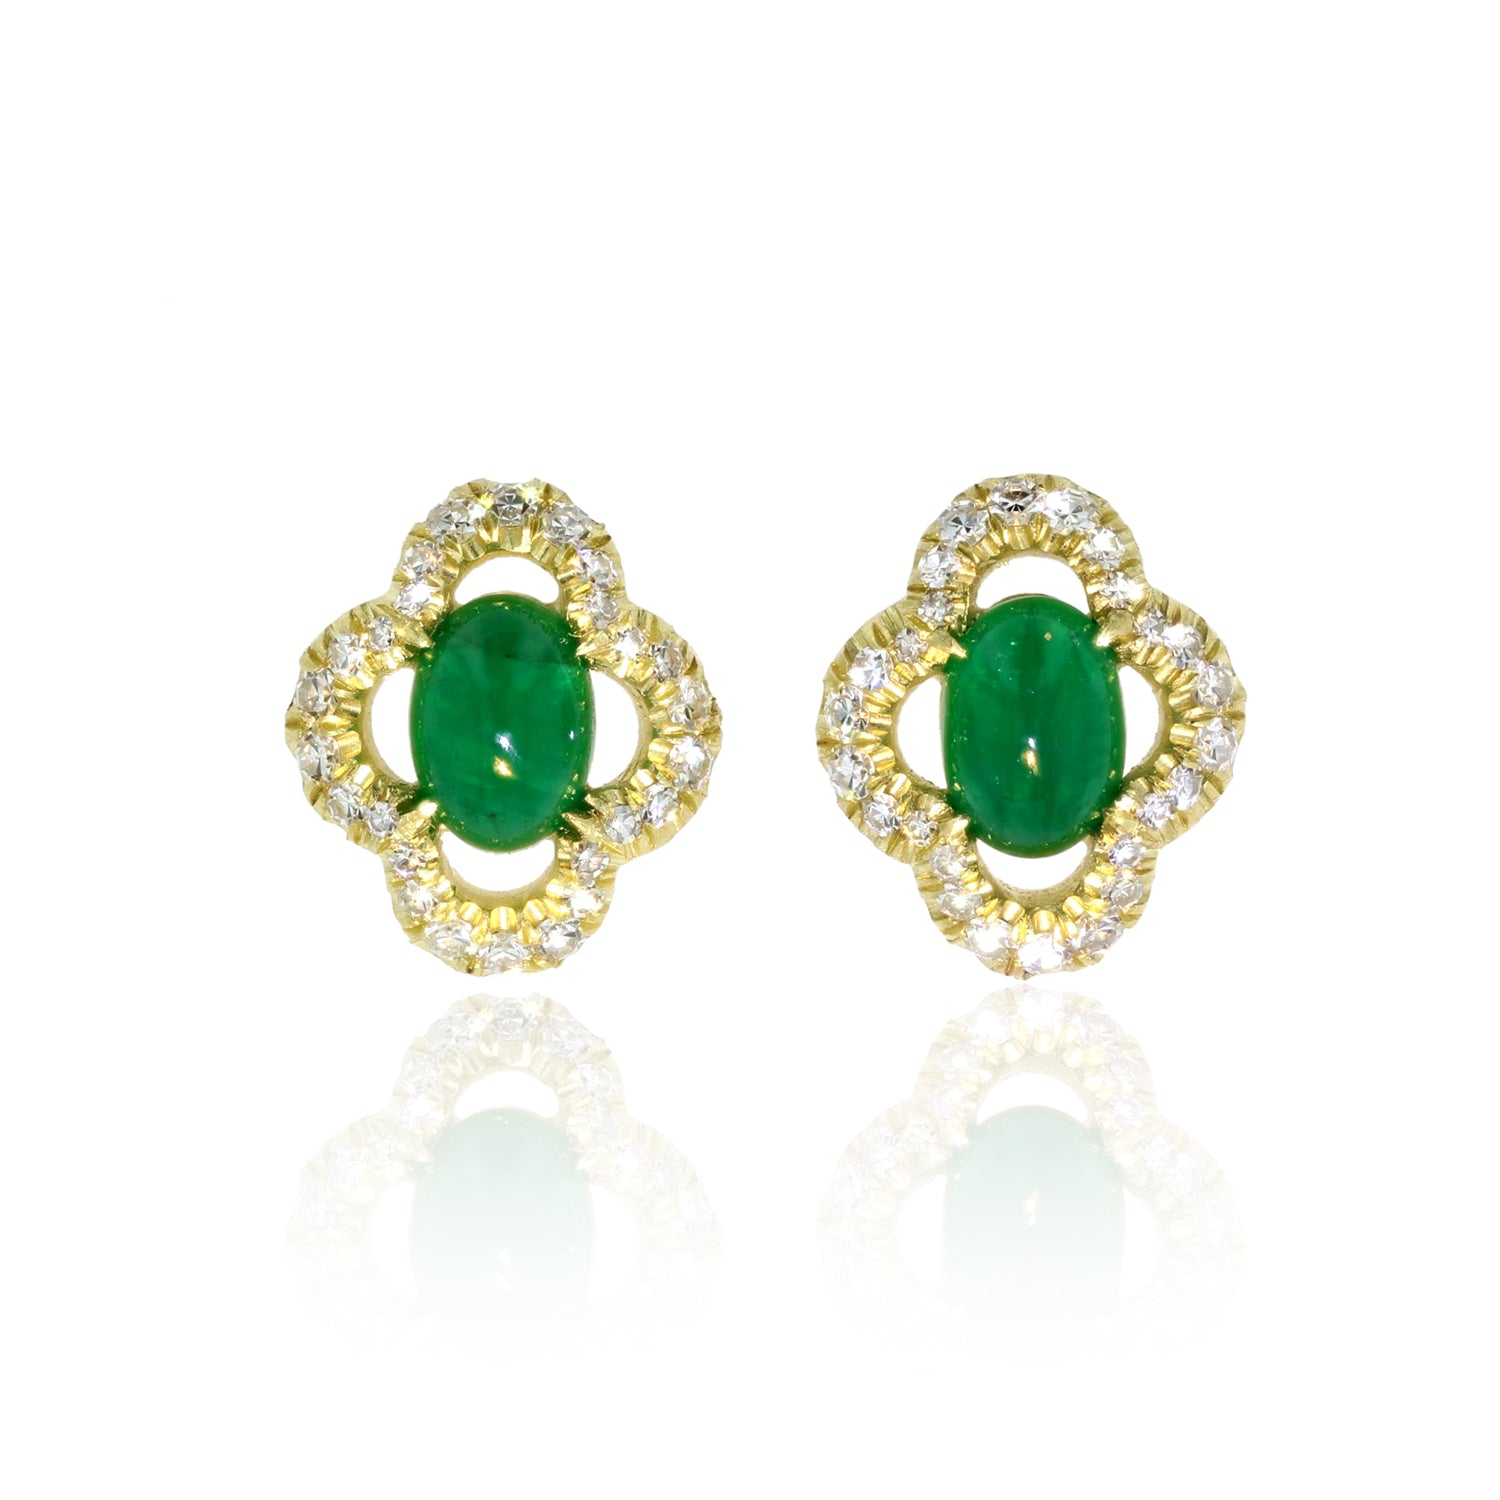 Cabochon Emerald and Diamond earrings 18K yellow gold